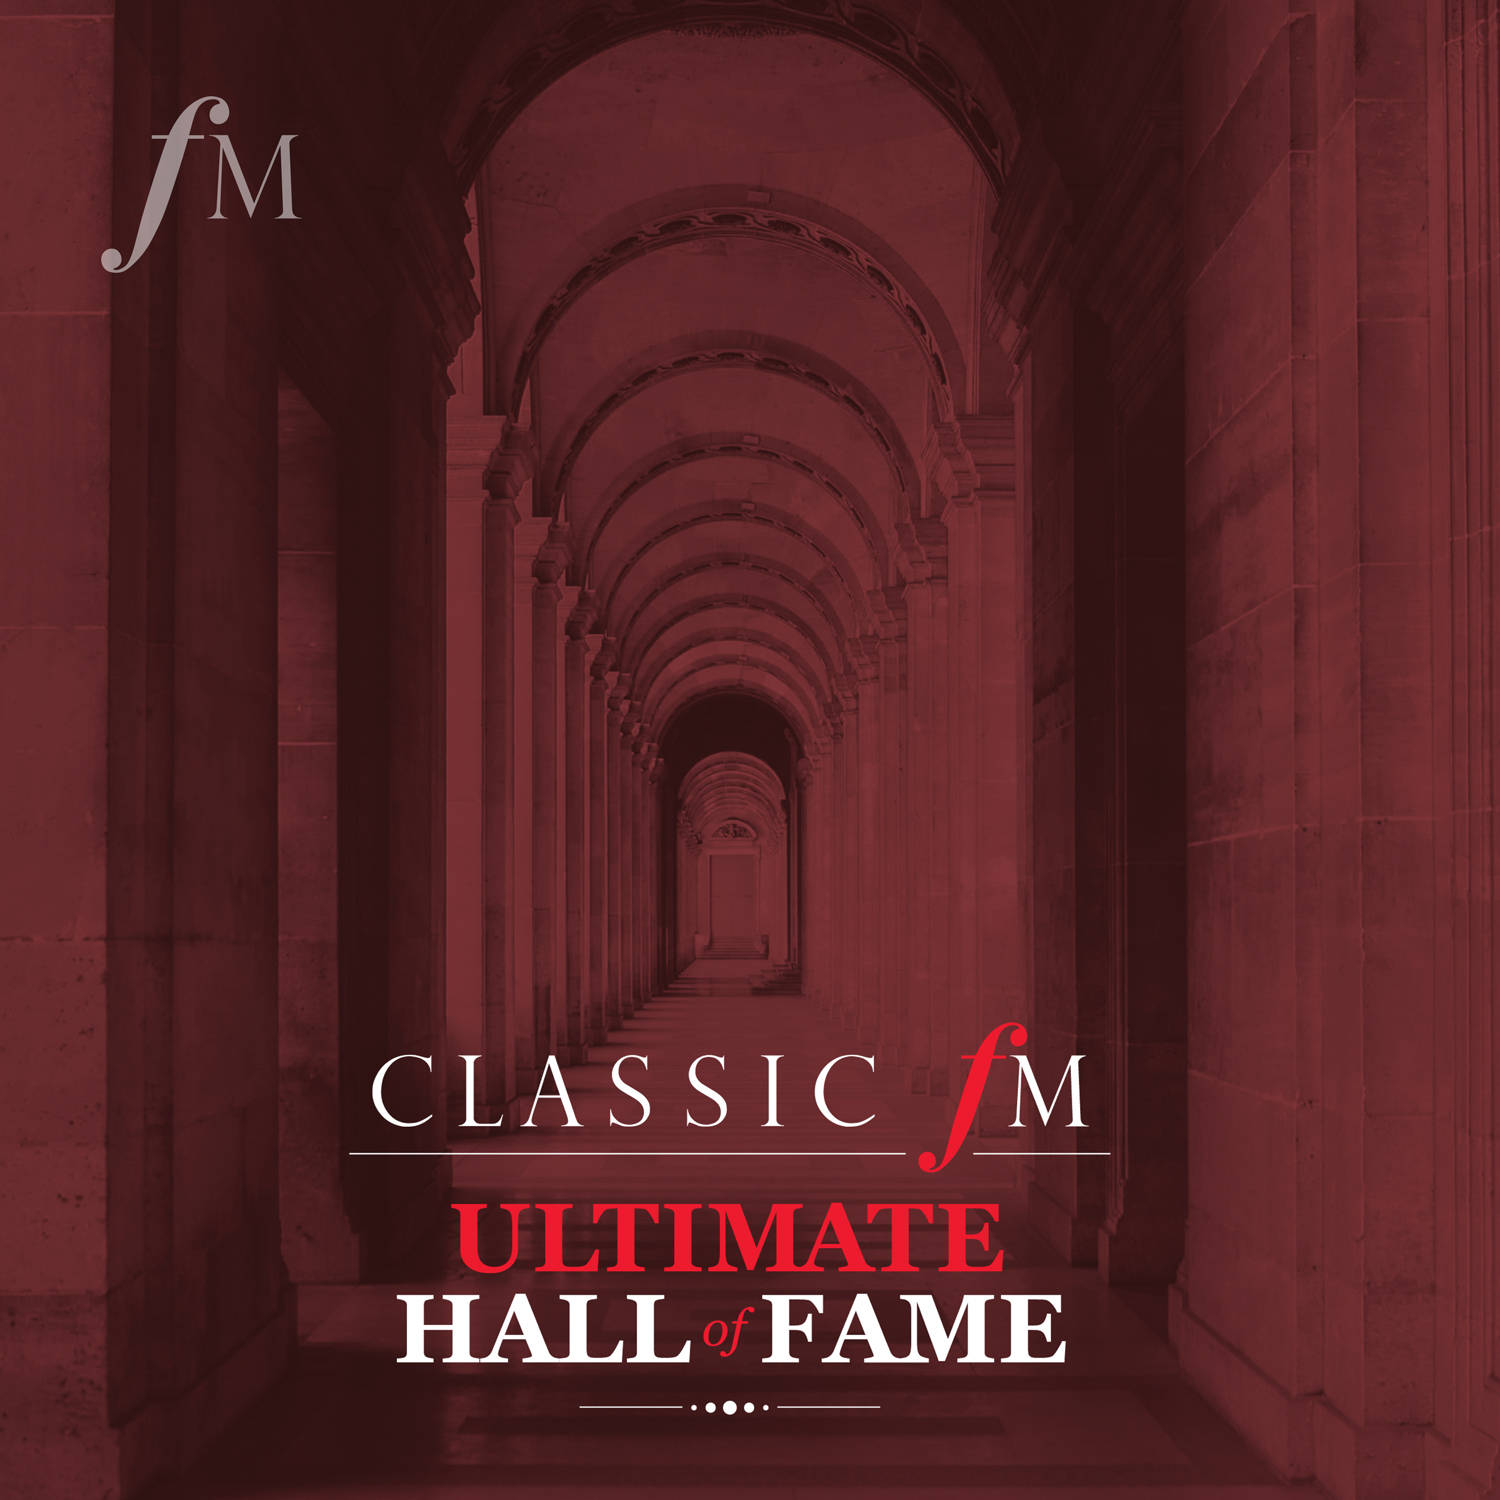 Ultimate Classic FM Hall of Fame image